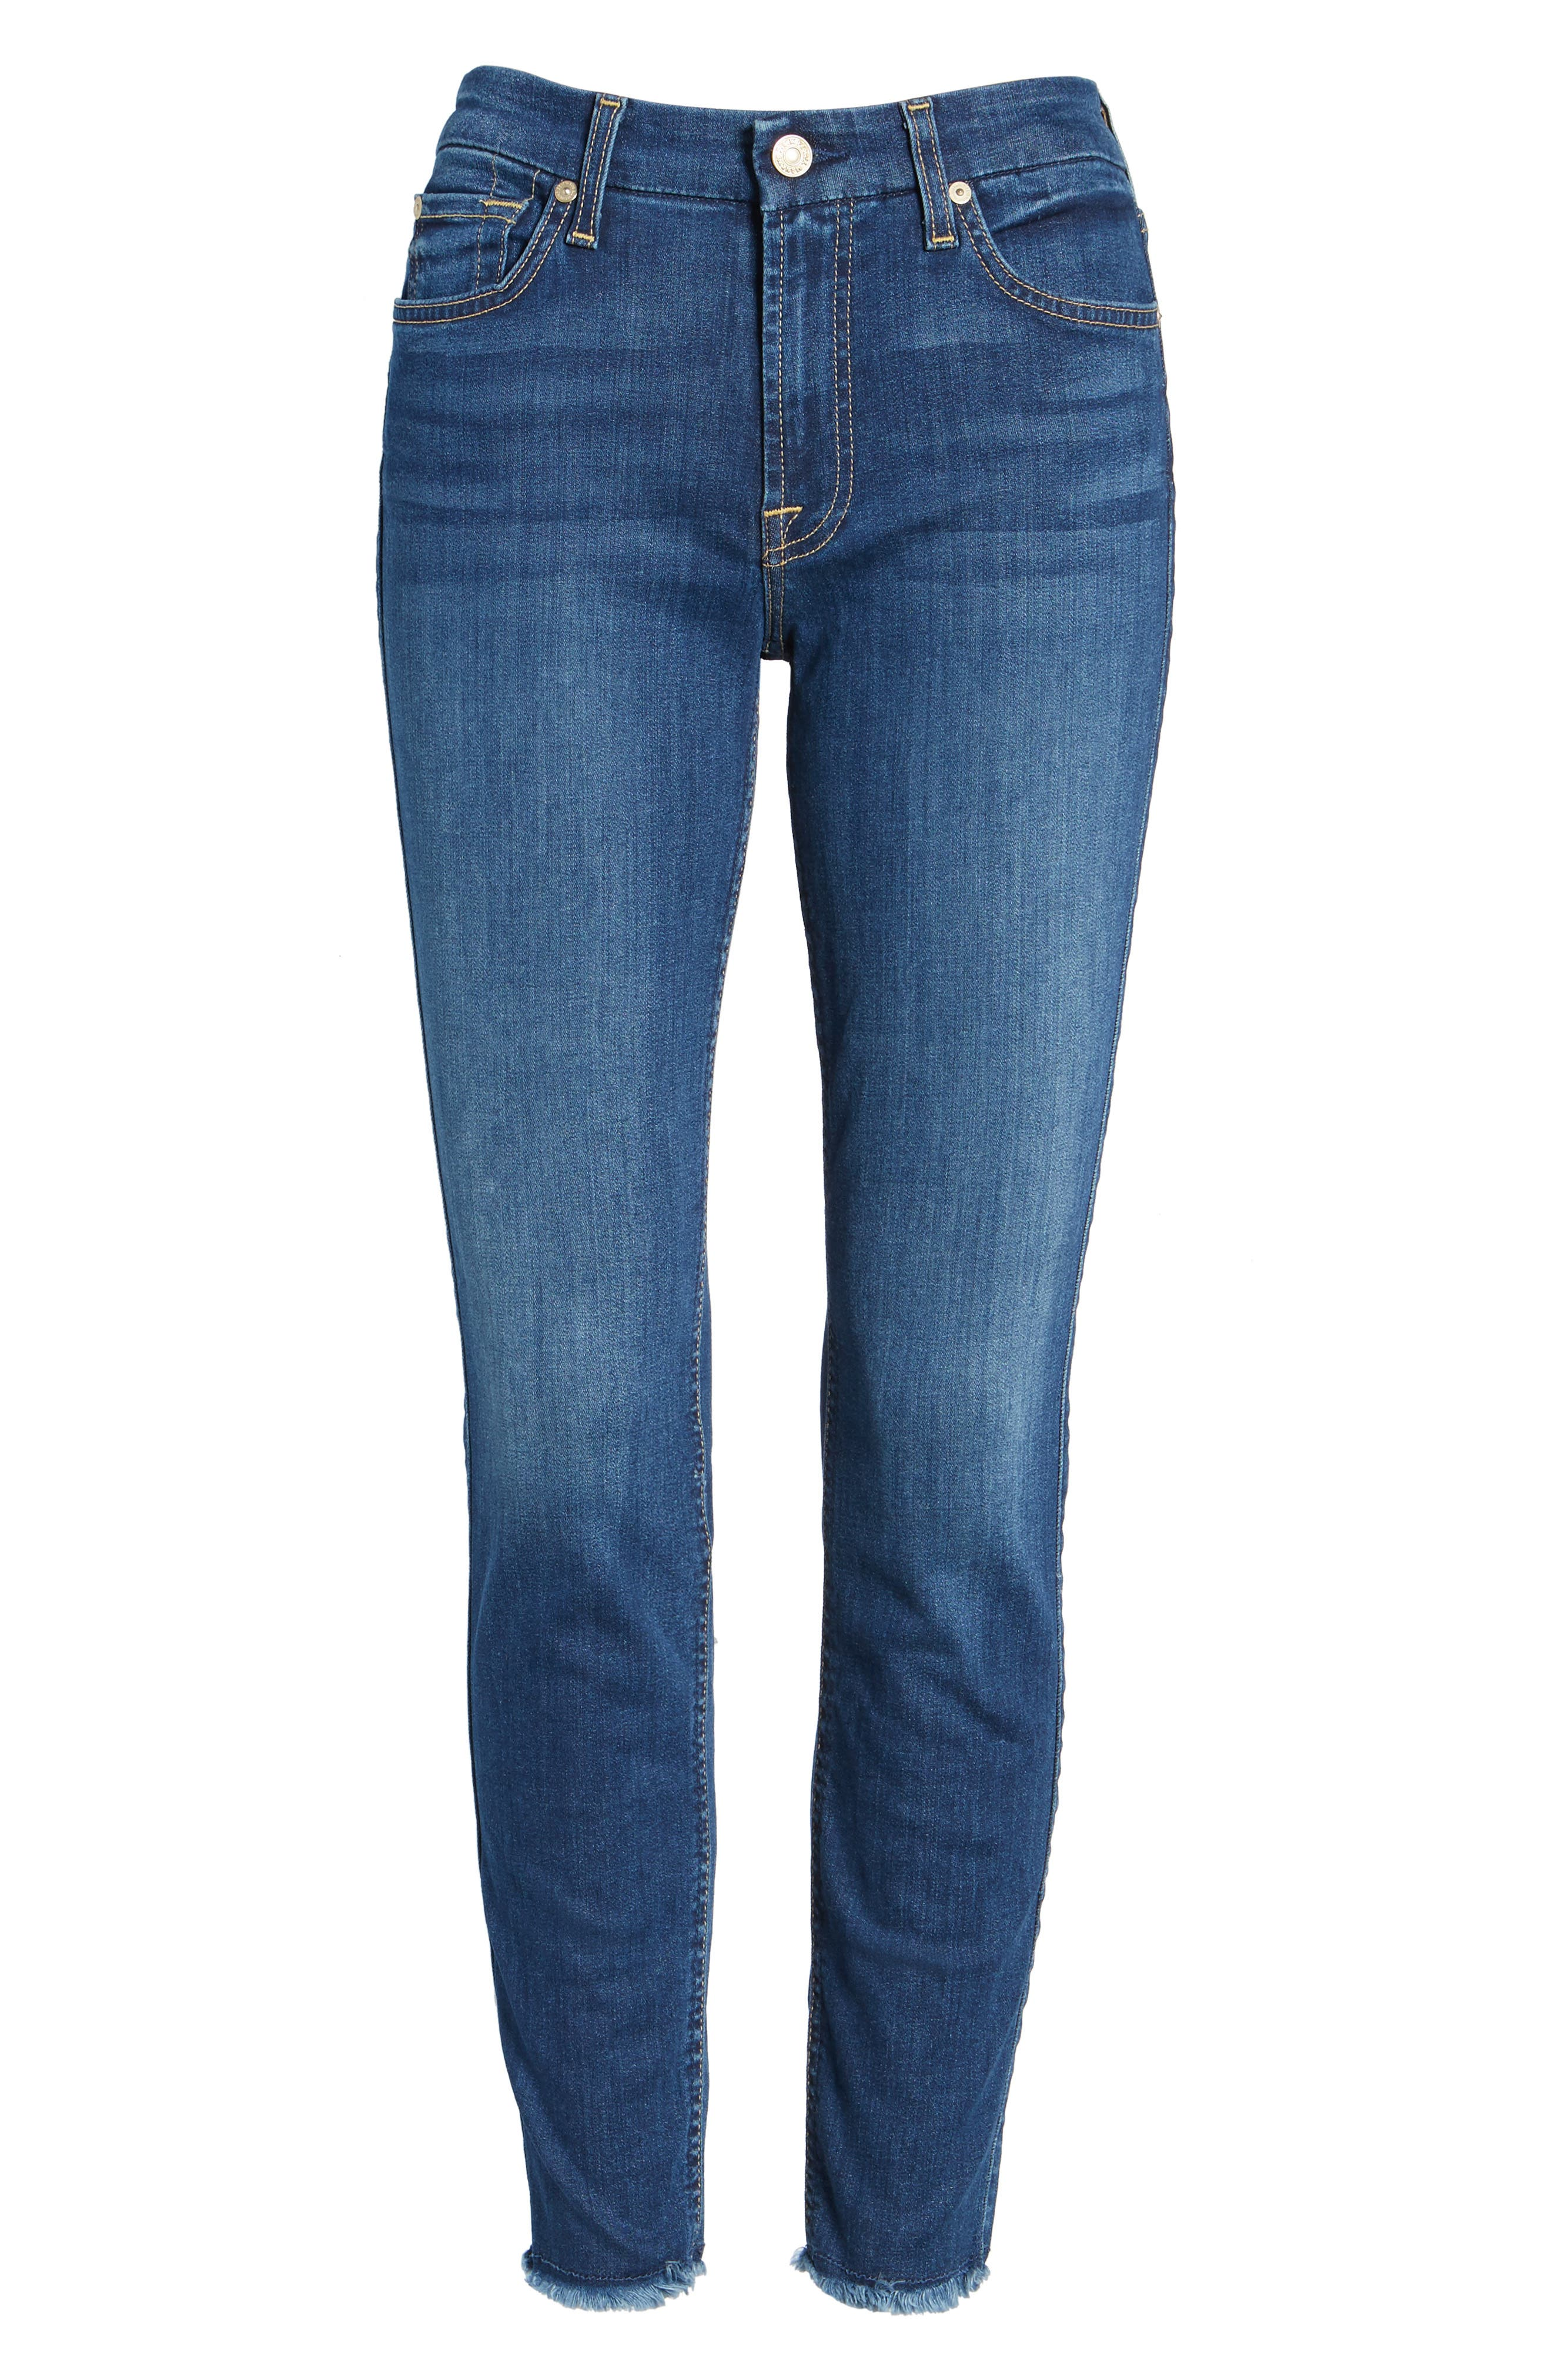 7 FOR ALL MANKIND<SUP>®</SUP>, b(air) Raw Hem Ankle Skinny Jeans, Alternate thumbnail 6, color, BAIR REIGN